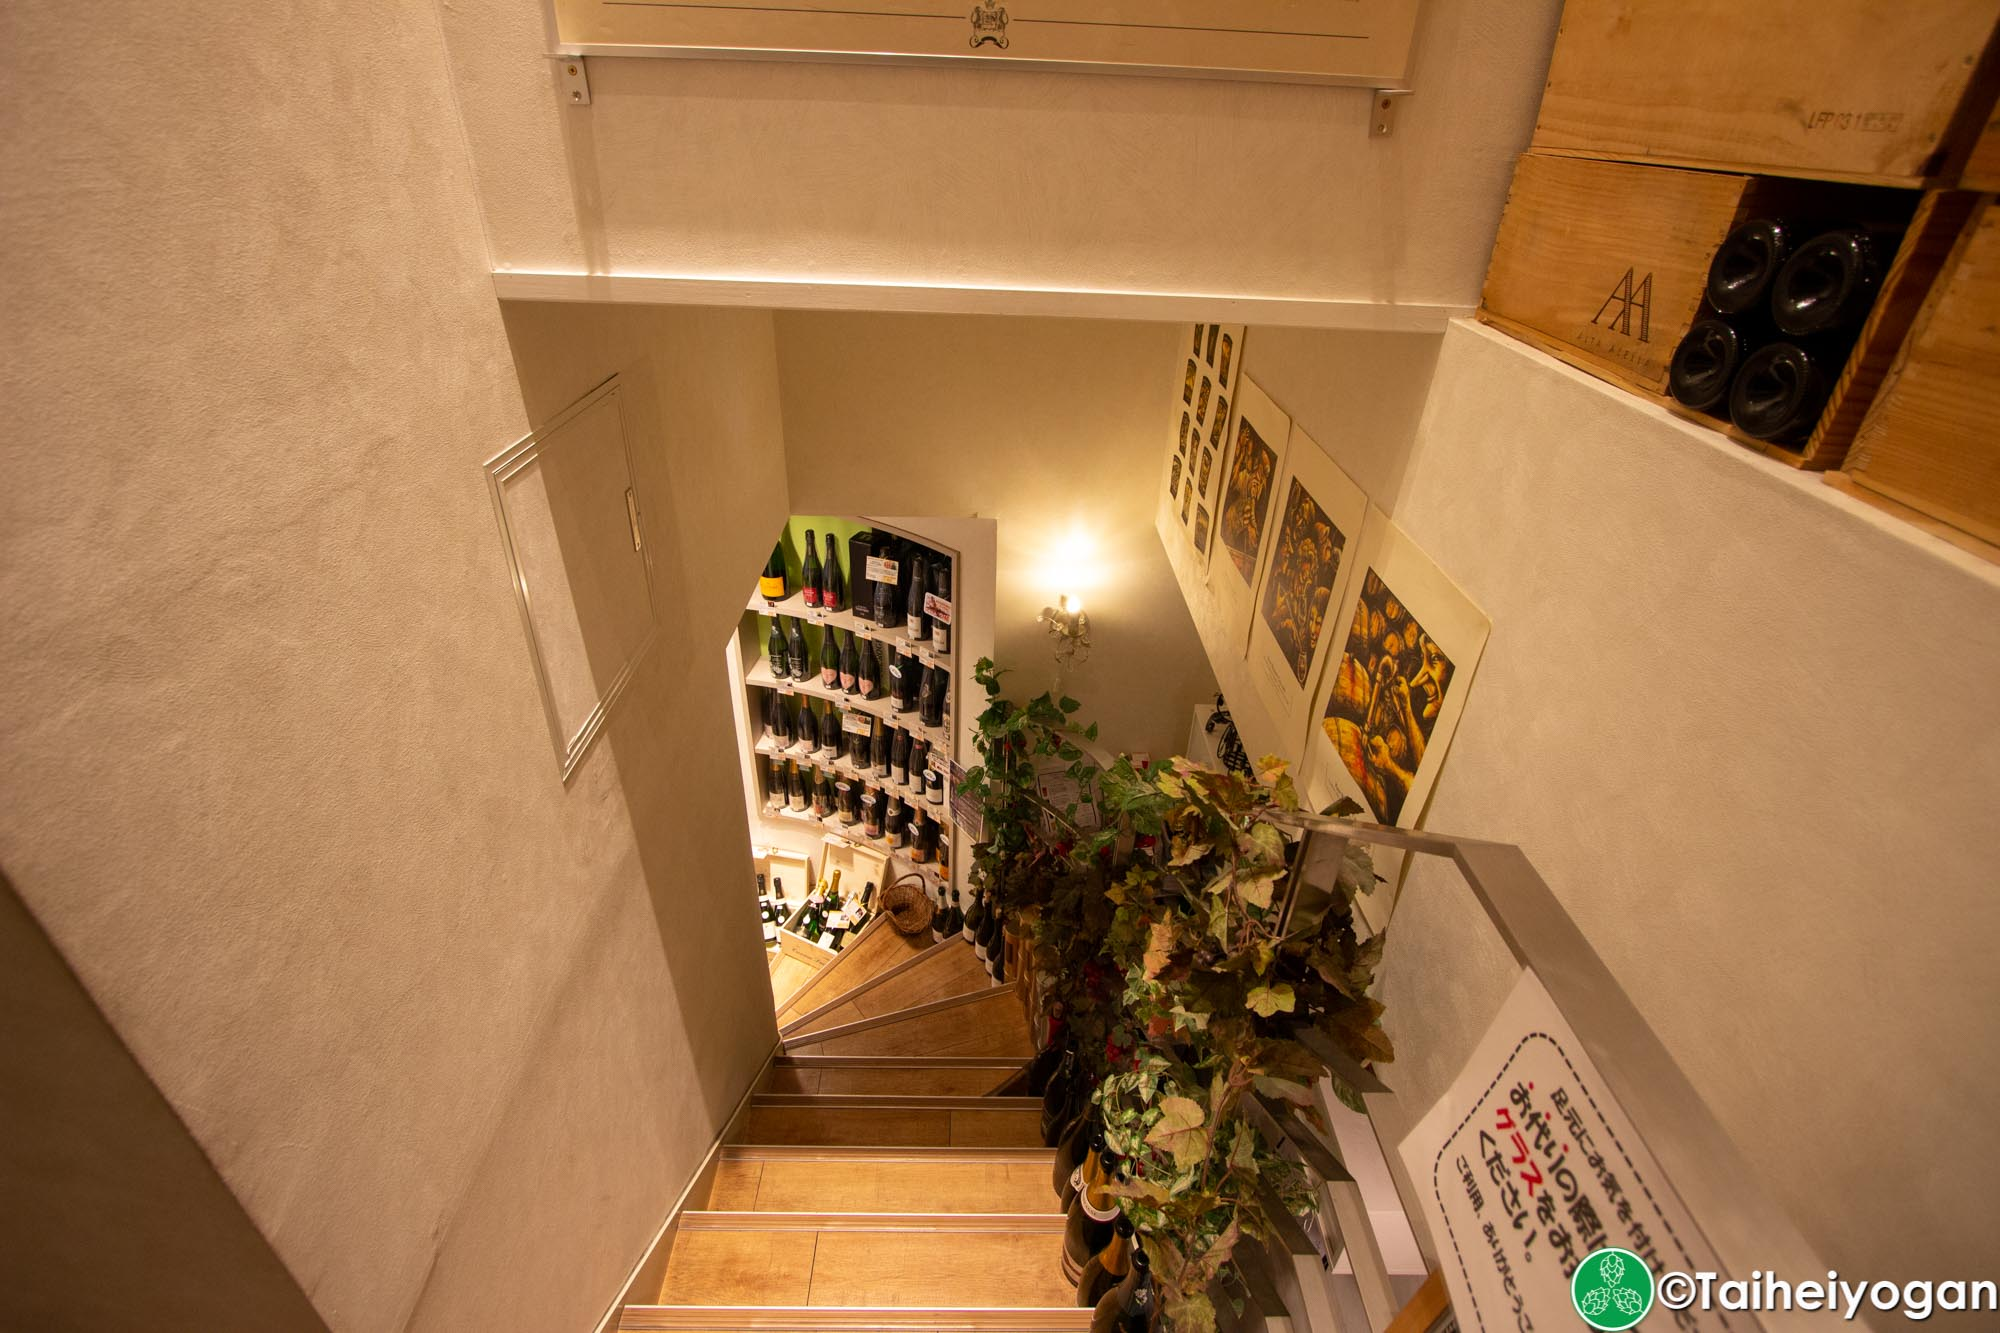 TDM 1874 Aoyama - Interior - 2F - Stairs to 1F